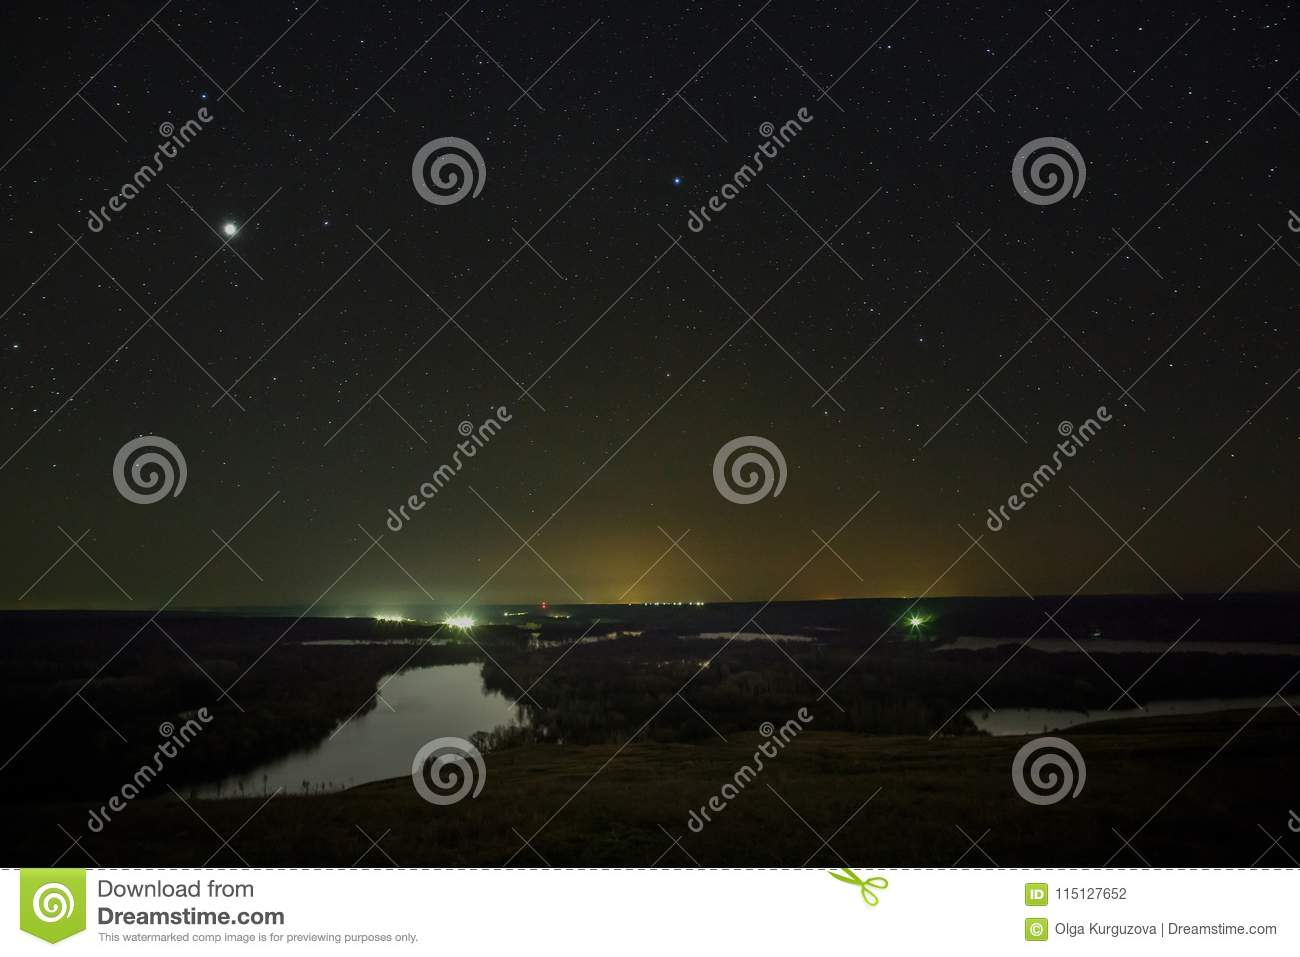 Planet Jupiter and stars in the night sky.